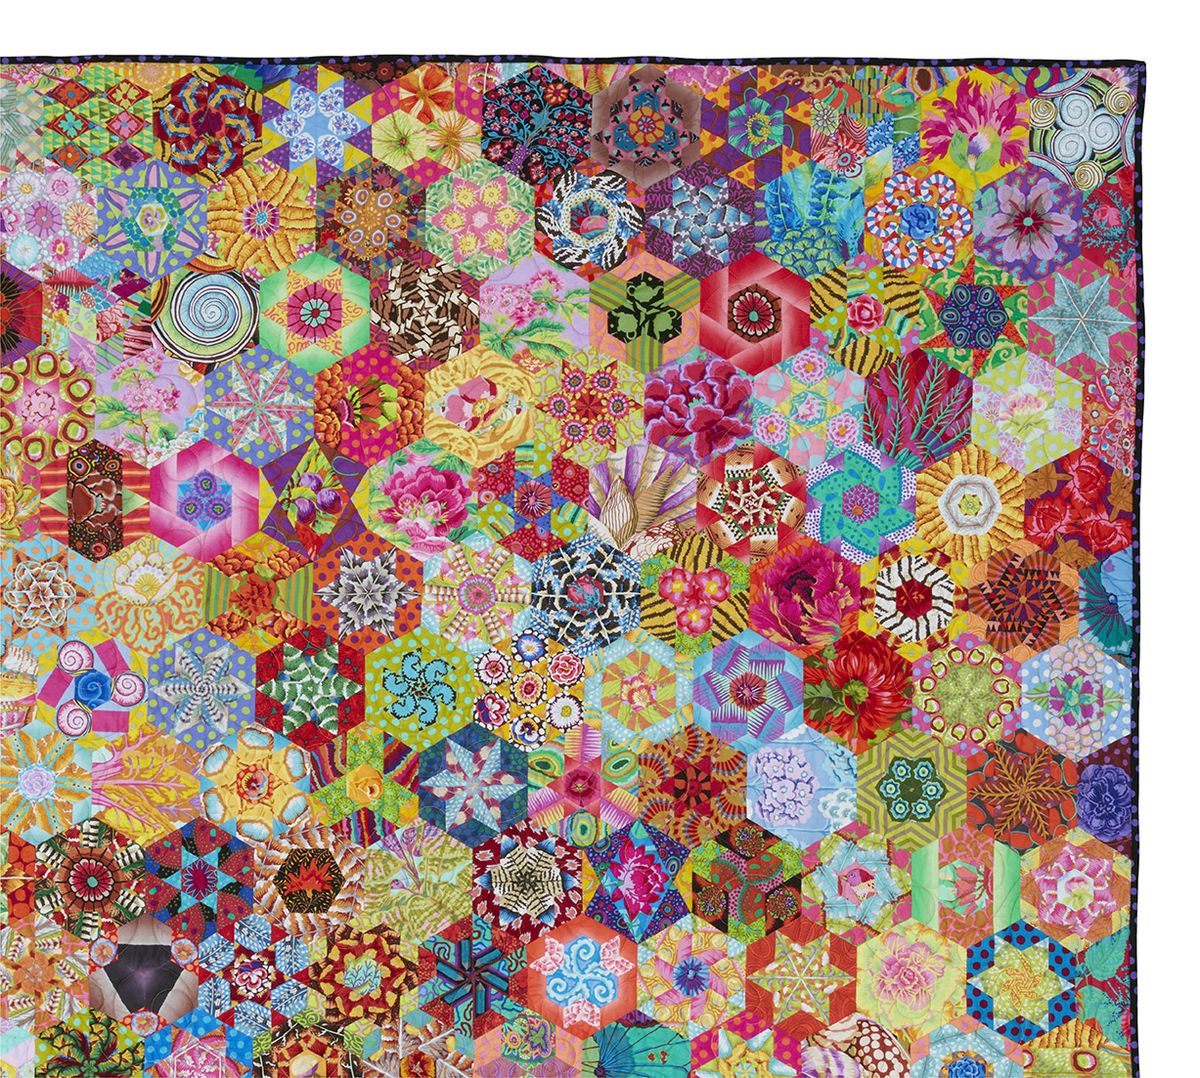 1000+ images about Quilty: Hexagon on Pinterest | Hexagon ...